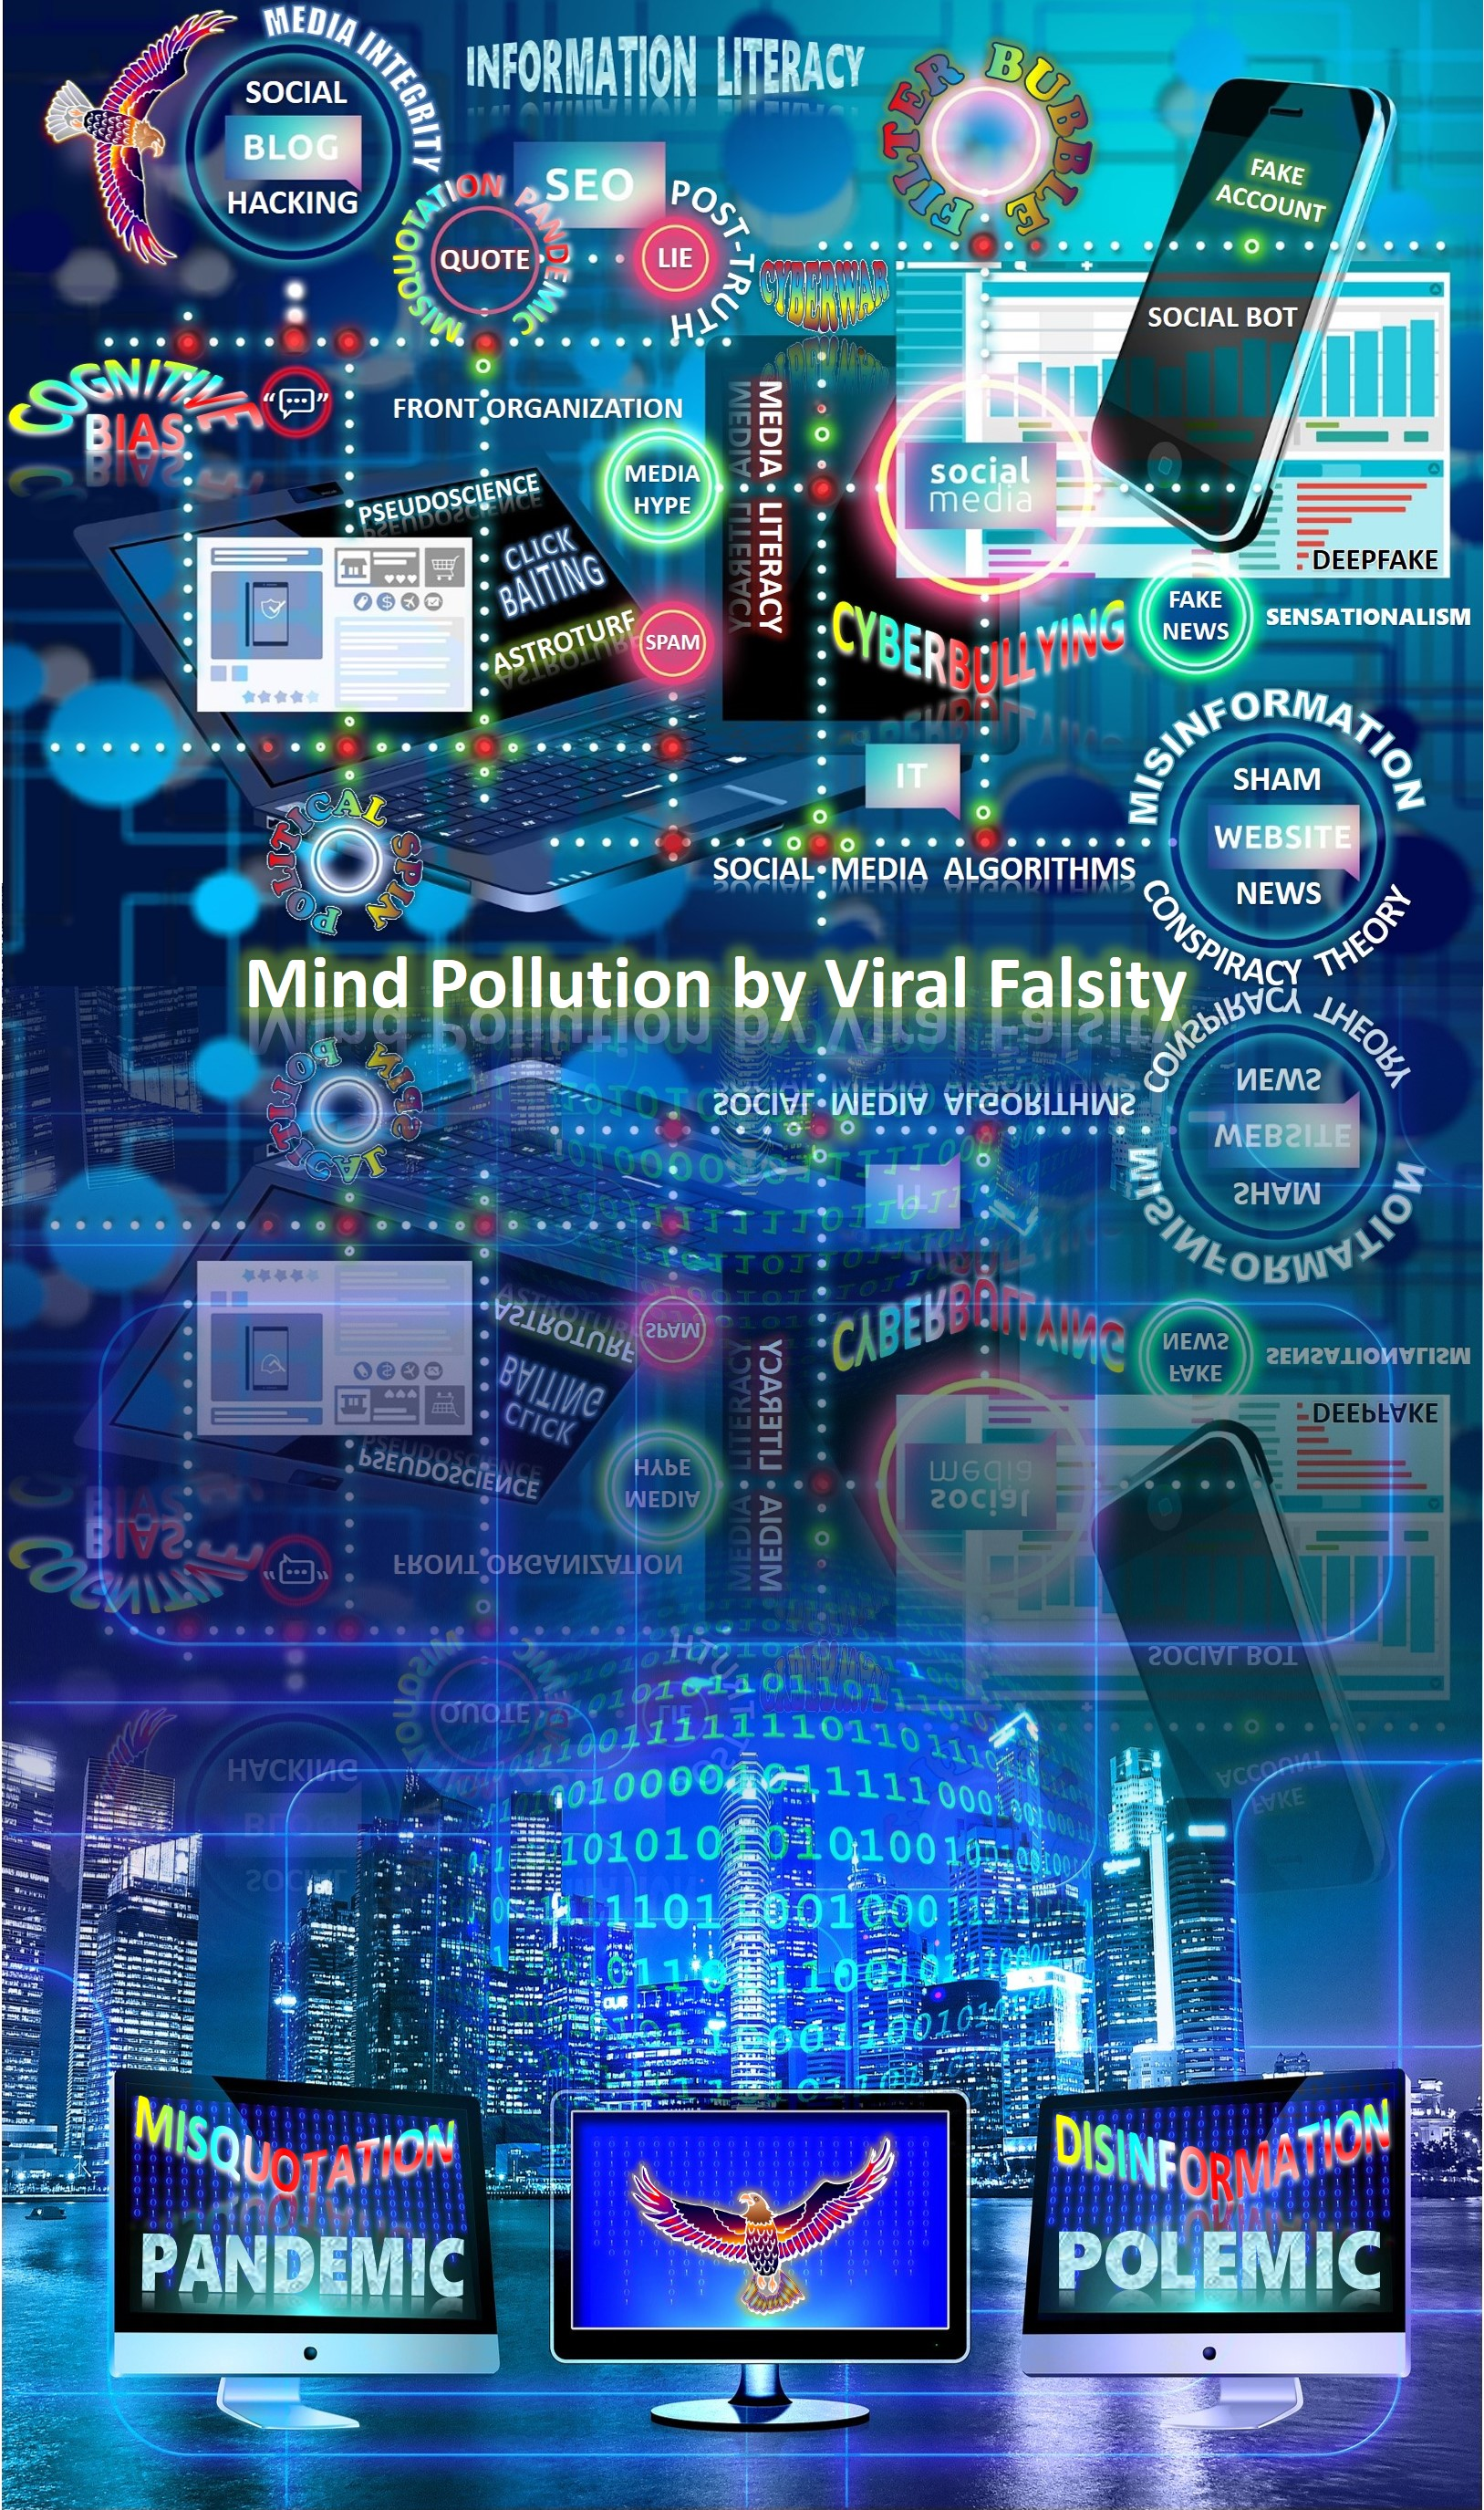 Misquotation Pandemic and Disinformation Polemic: Mind Pollution by Viral Falsity